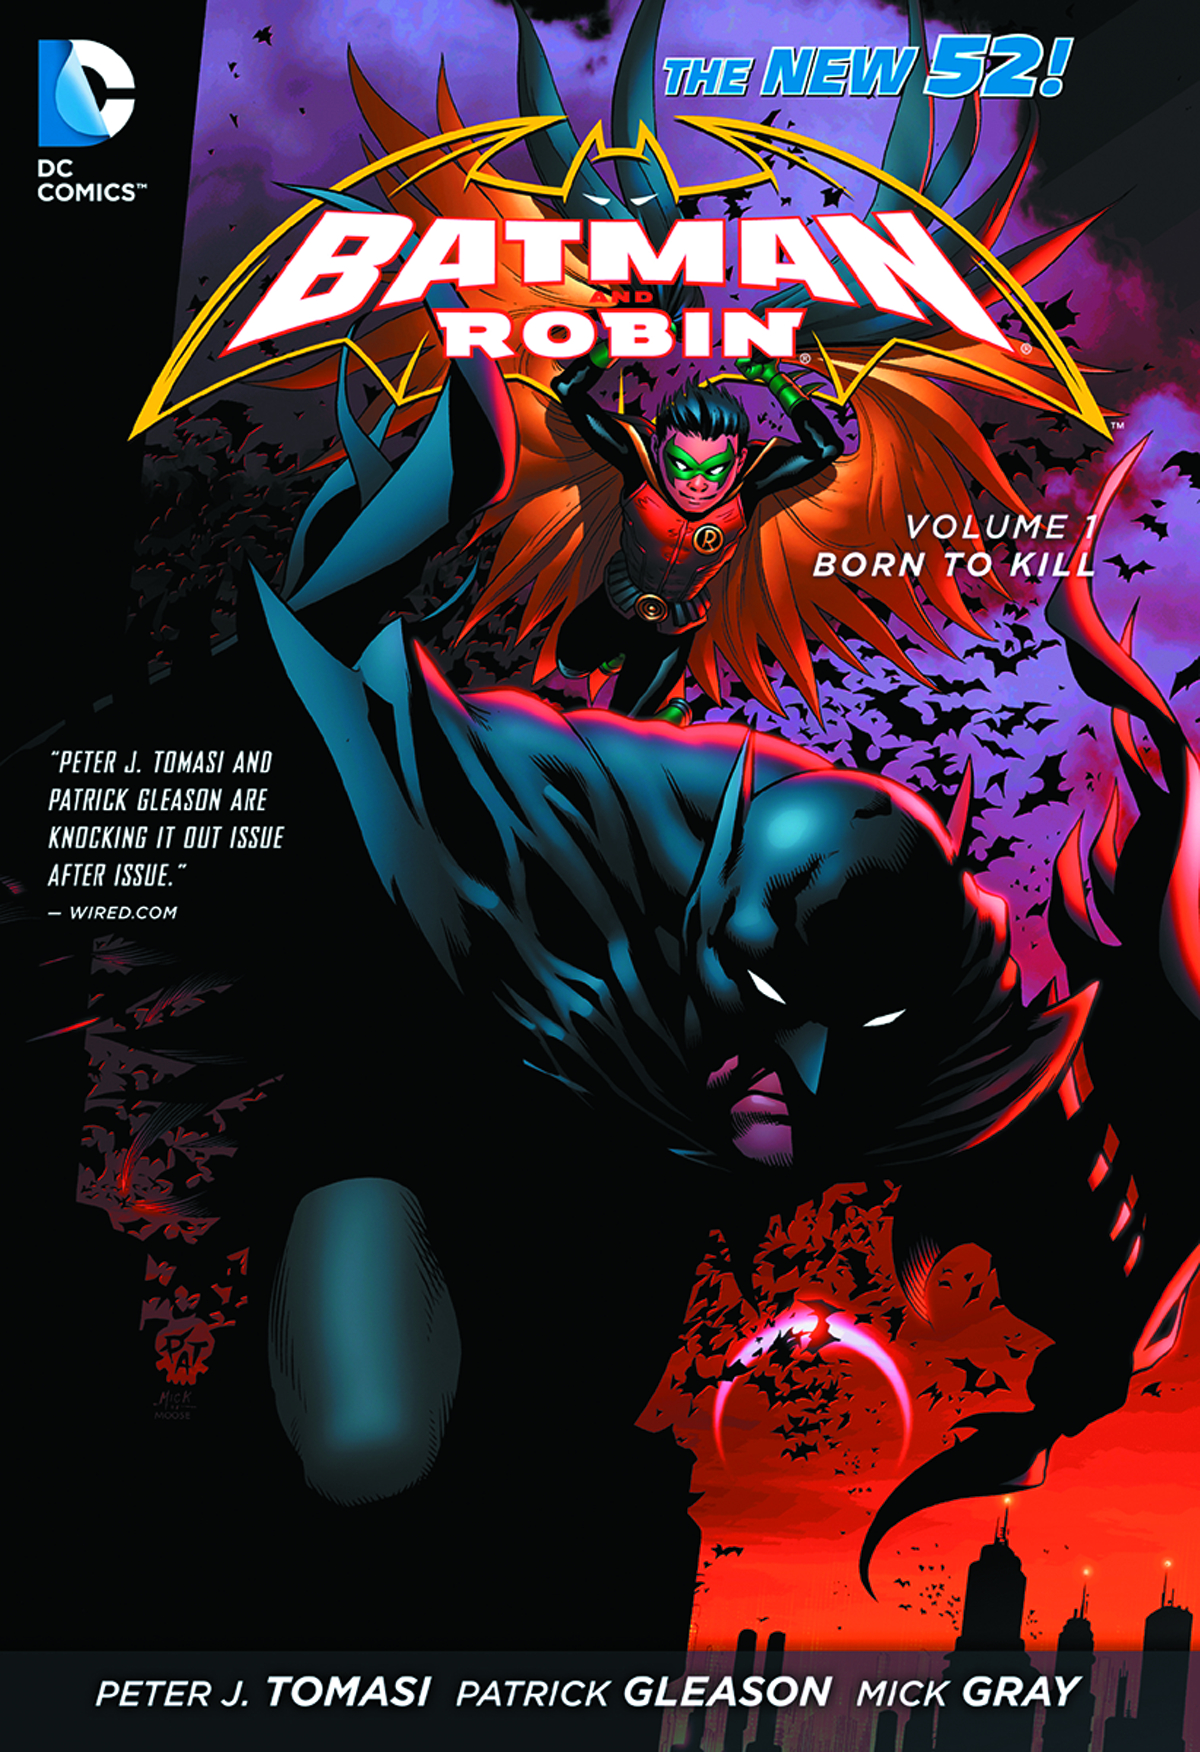 BATMAN & ROBIN TP VOL 01 BORN TO KILL